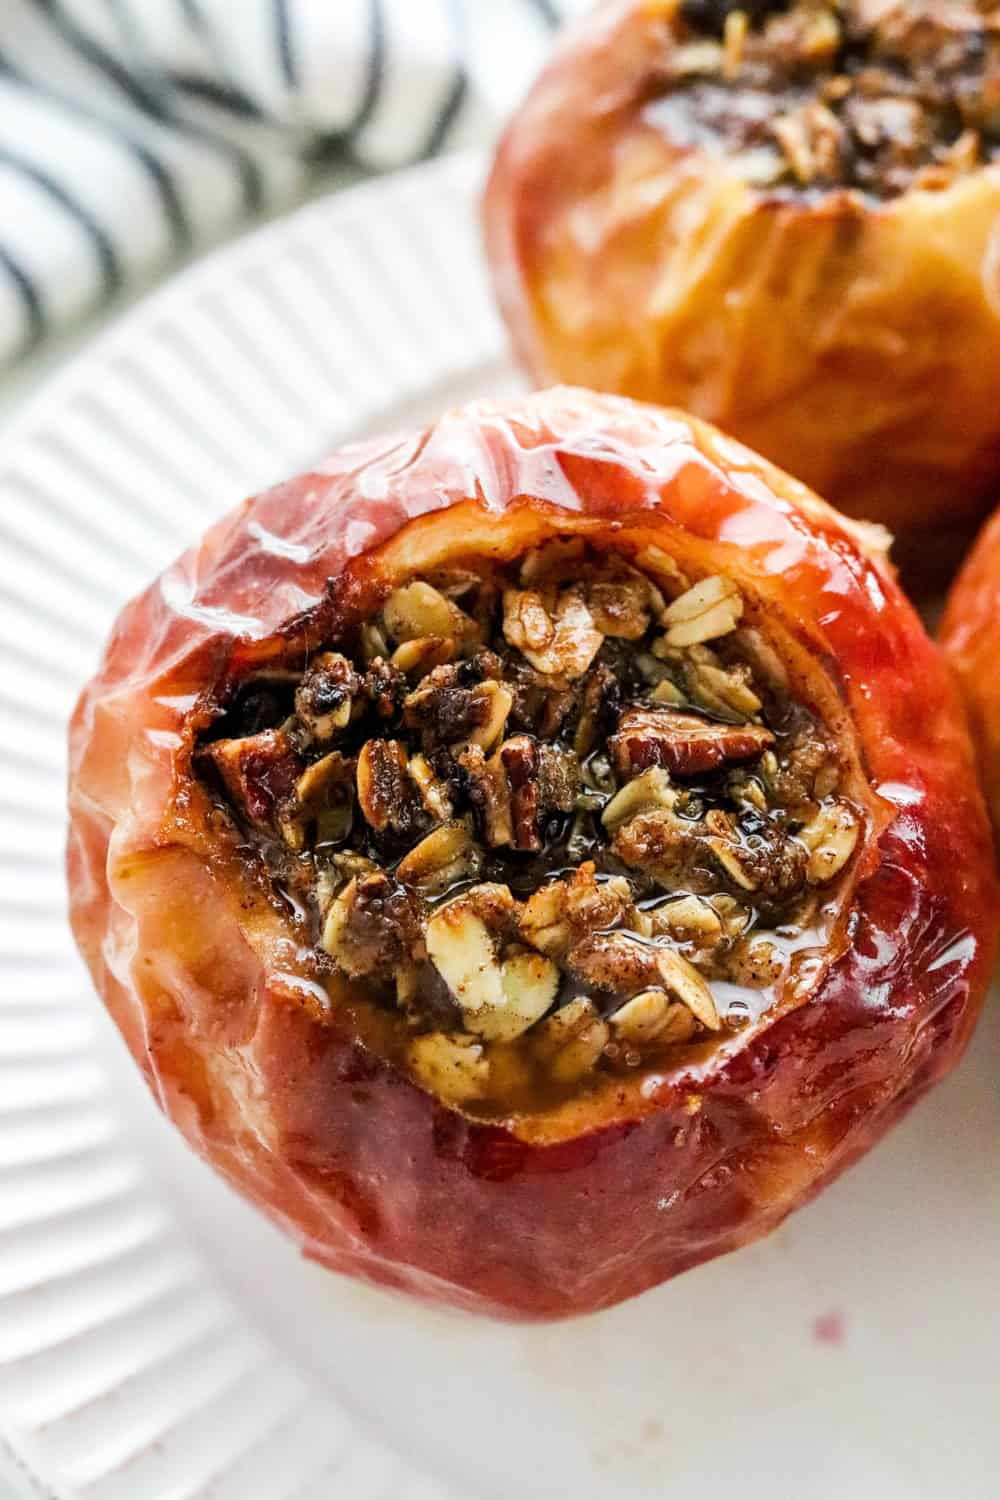 Whole baked apple filled with golden brown oat and nut crumble on a white plate with another baked able next to it and a blue and white striped towel behind it.